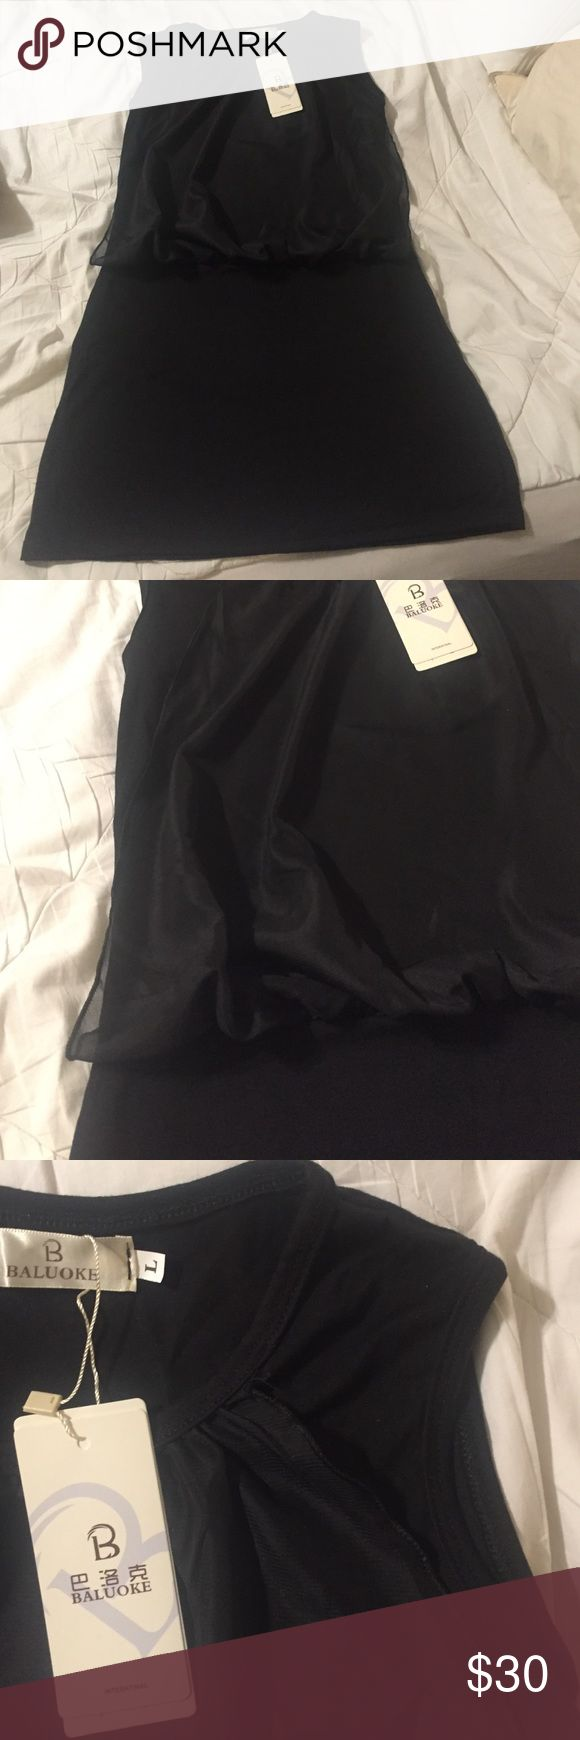 NWT- Cute black dress Very cute little black dress. Sheer lined top that blouses out a bit.  Marked size Large but DEFINITELY runs small! Fits more like a S/M Dresses